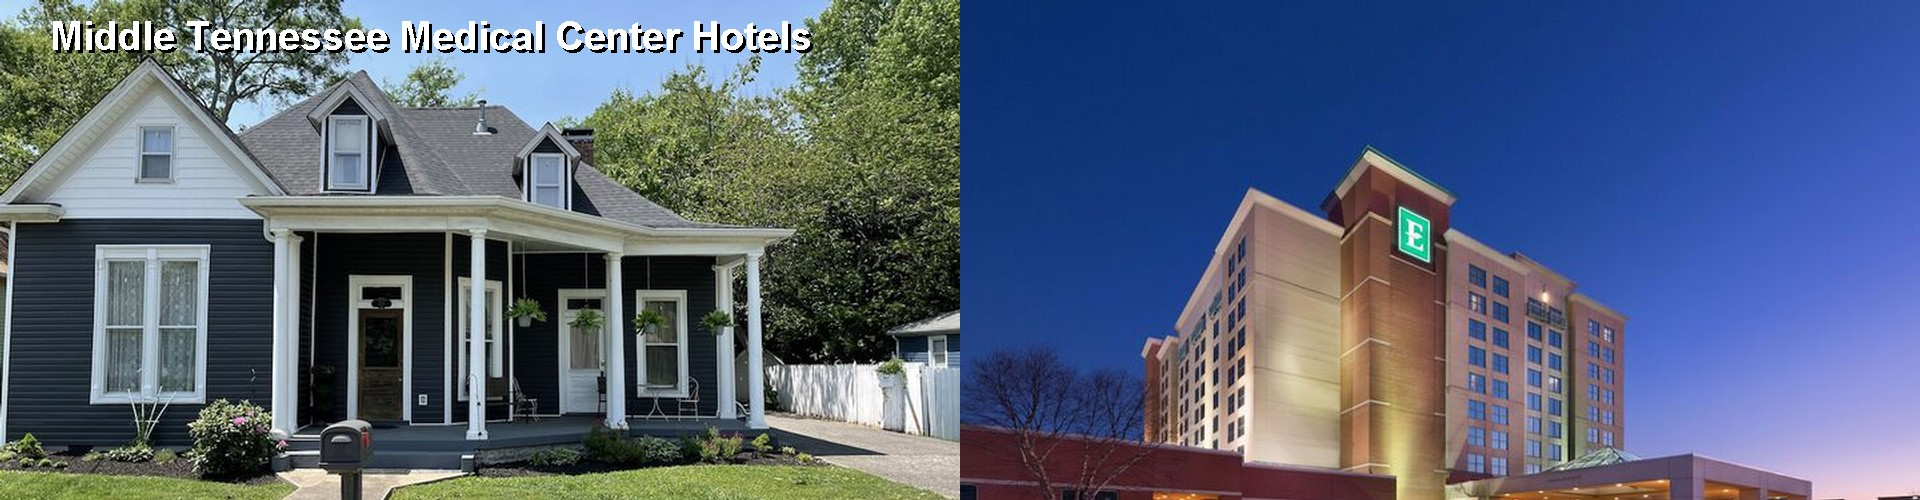 39 Hotels Near Middle Tennessee Medical Center In Murfreesboro Tn Motel 6 Bell Buckle Accommodation